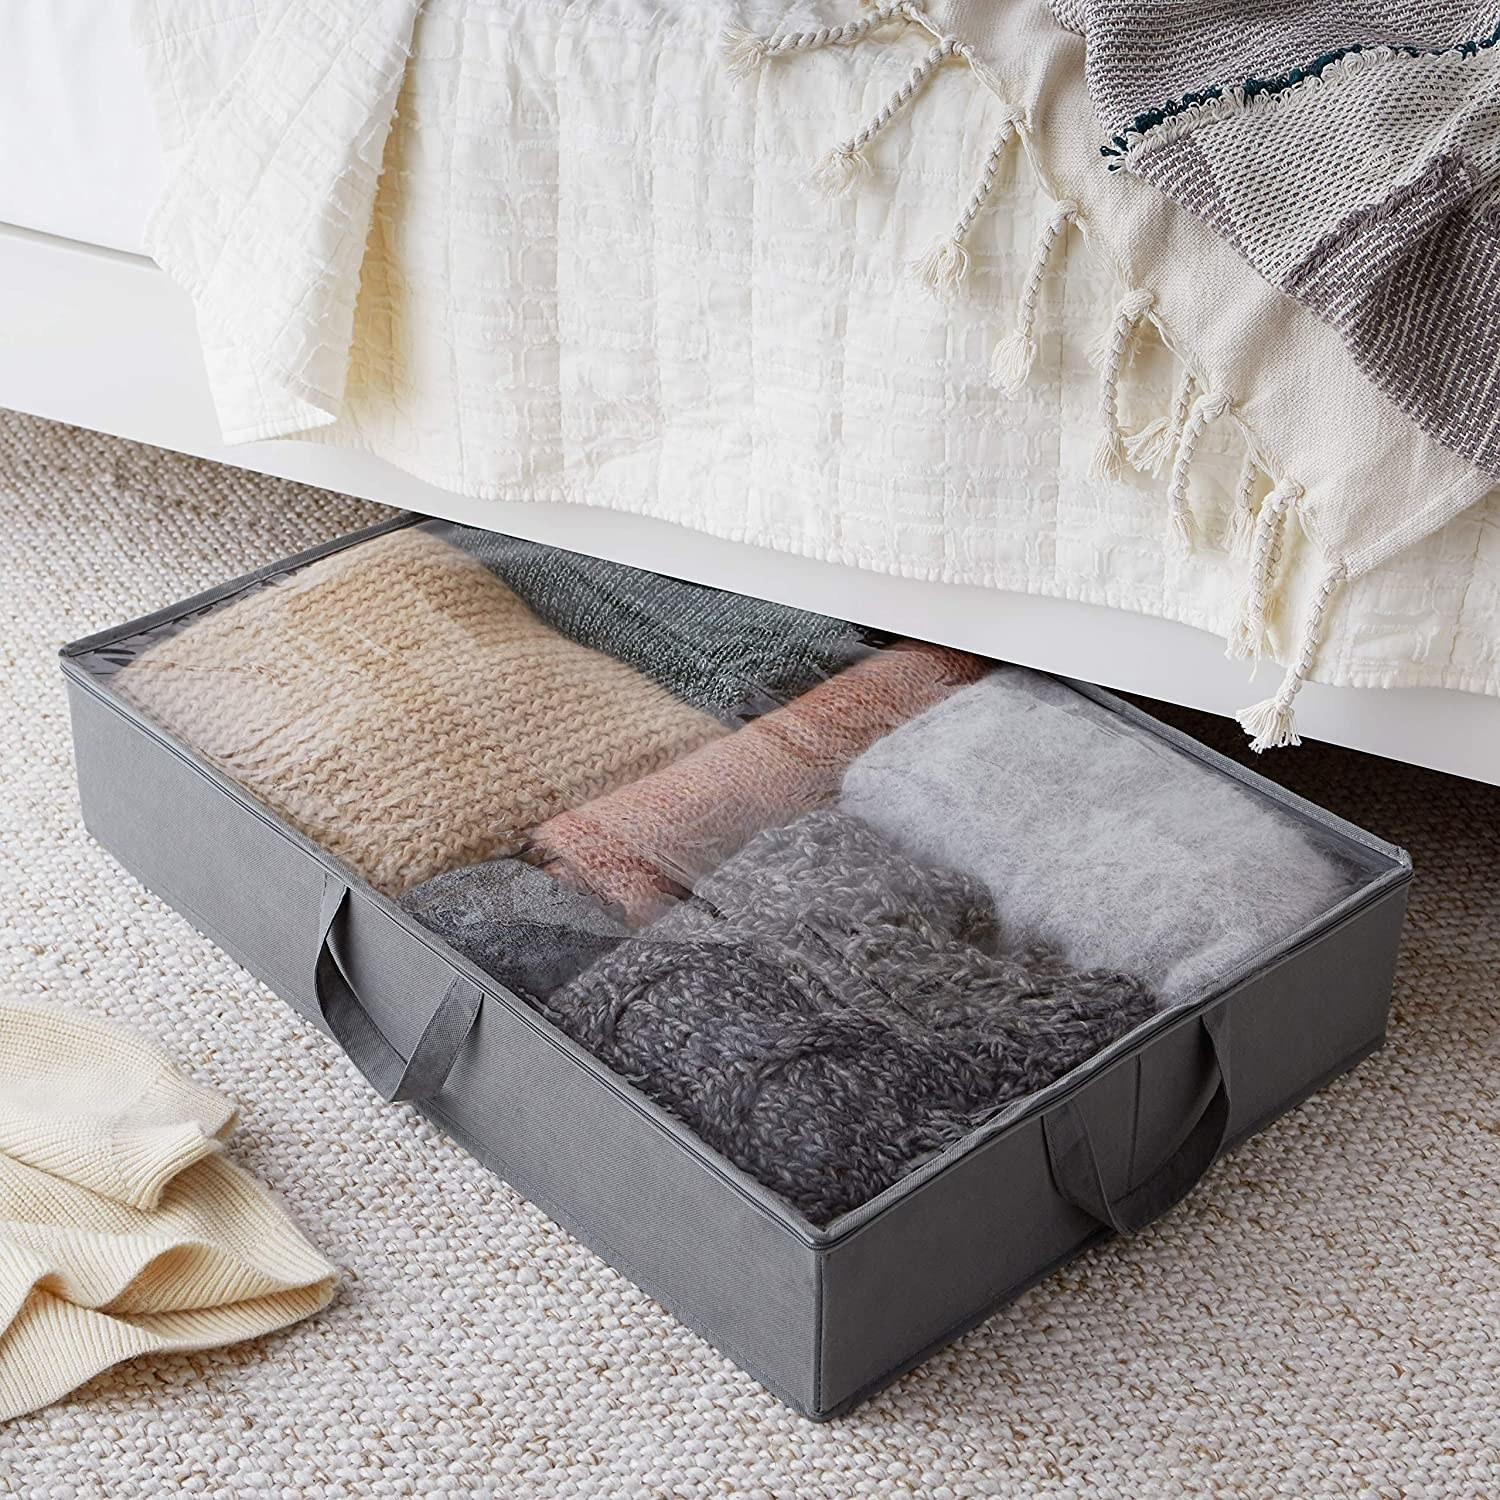 the bin with sweaters in it under a bed